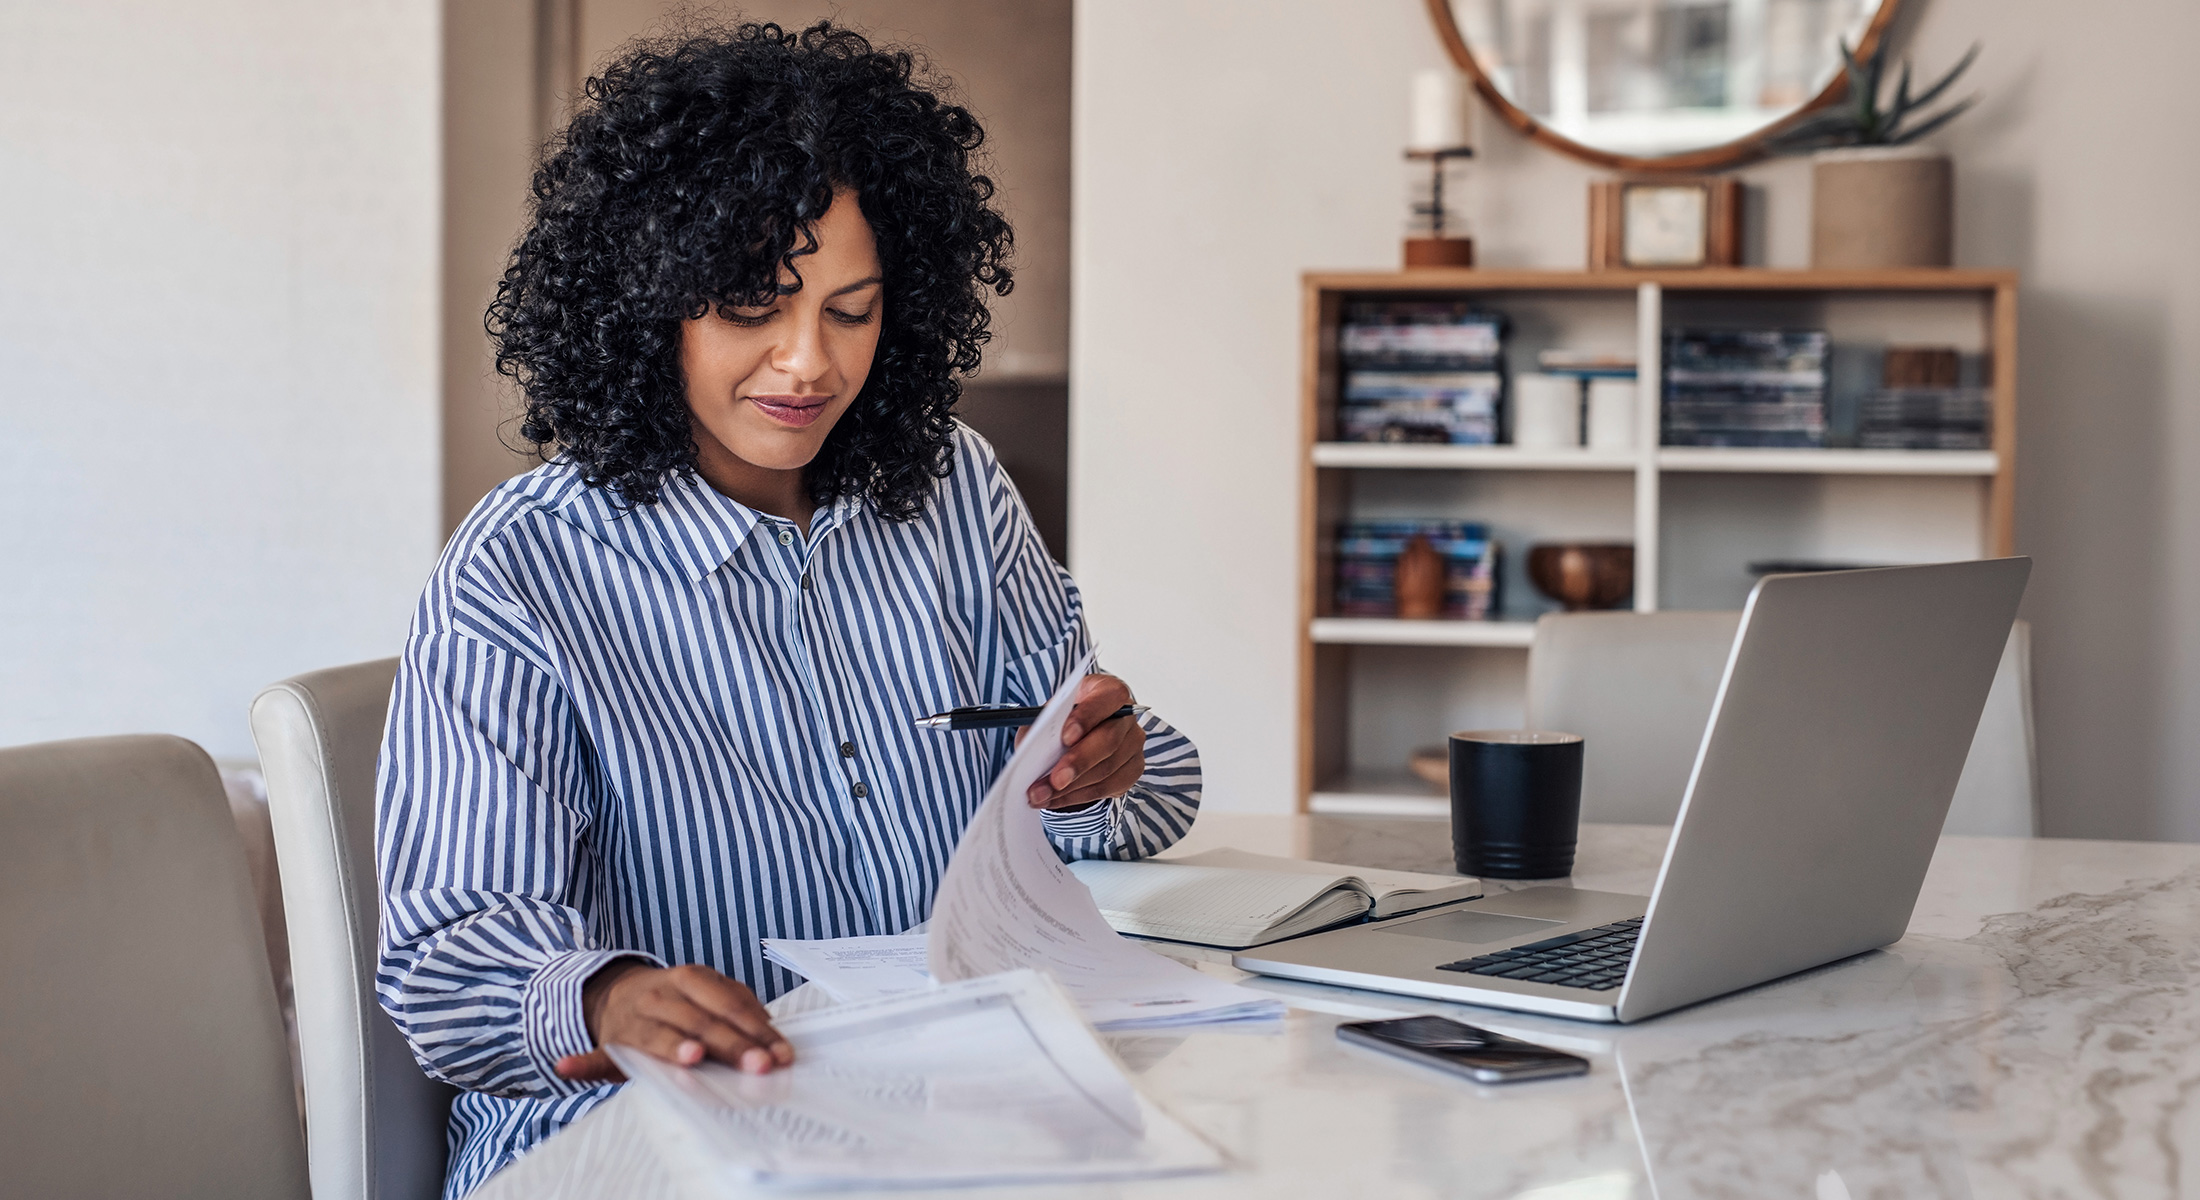 Woman working at home on laptop